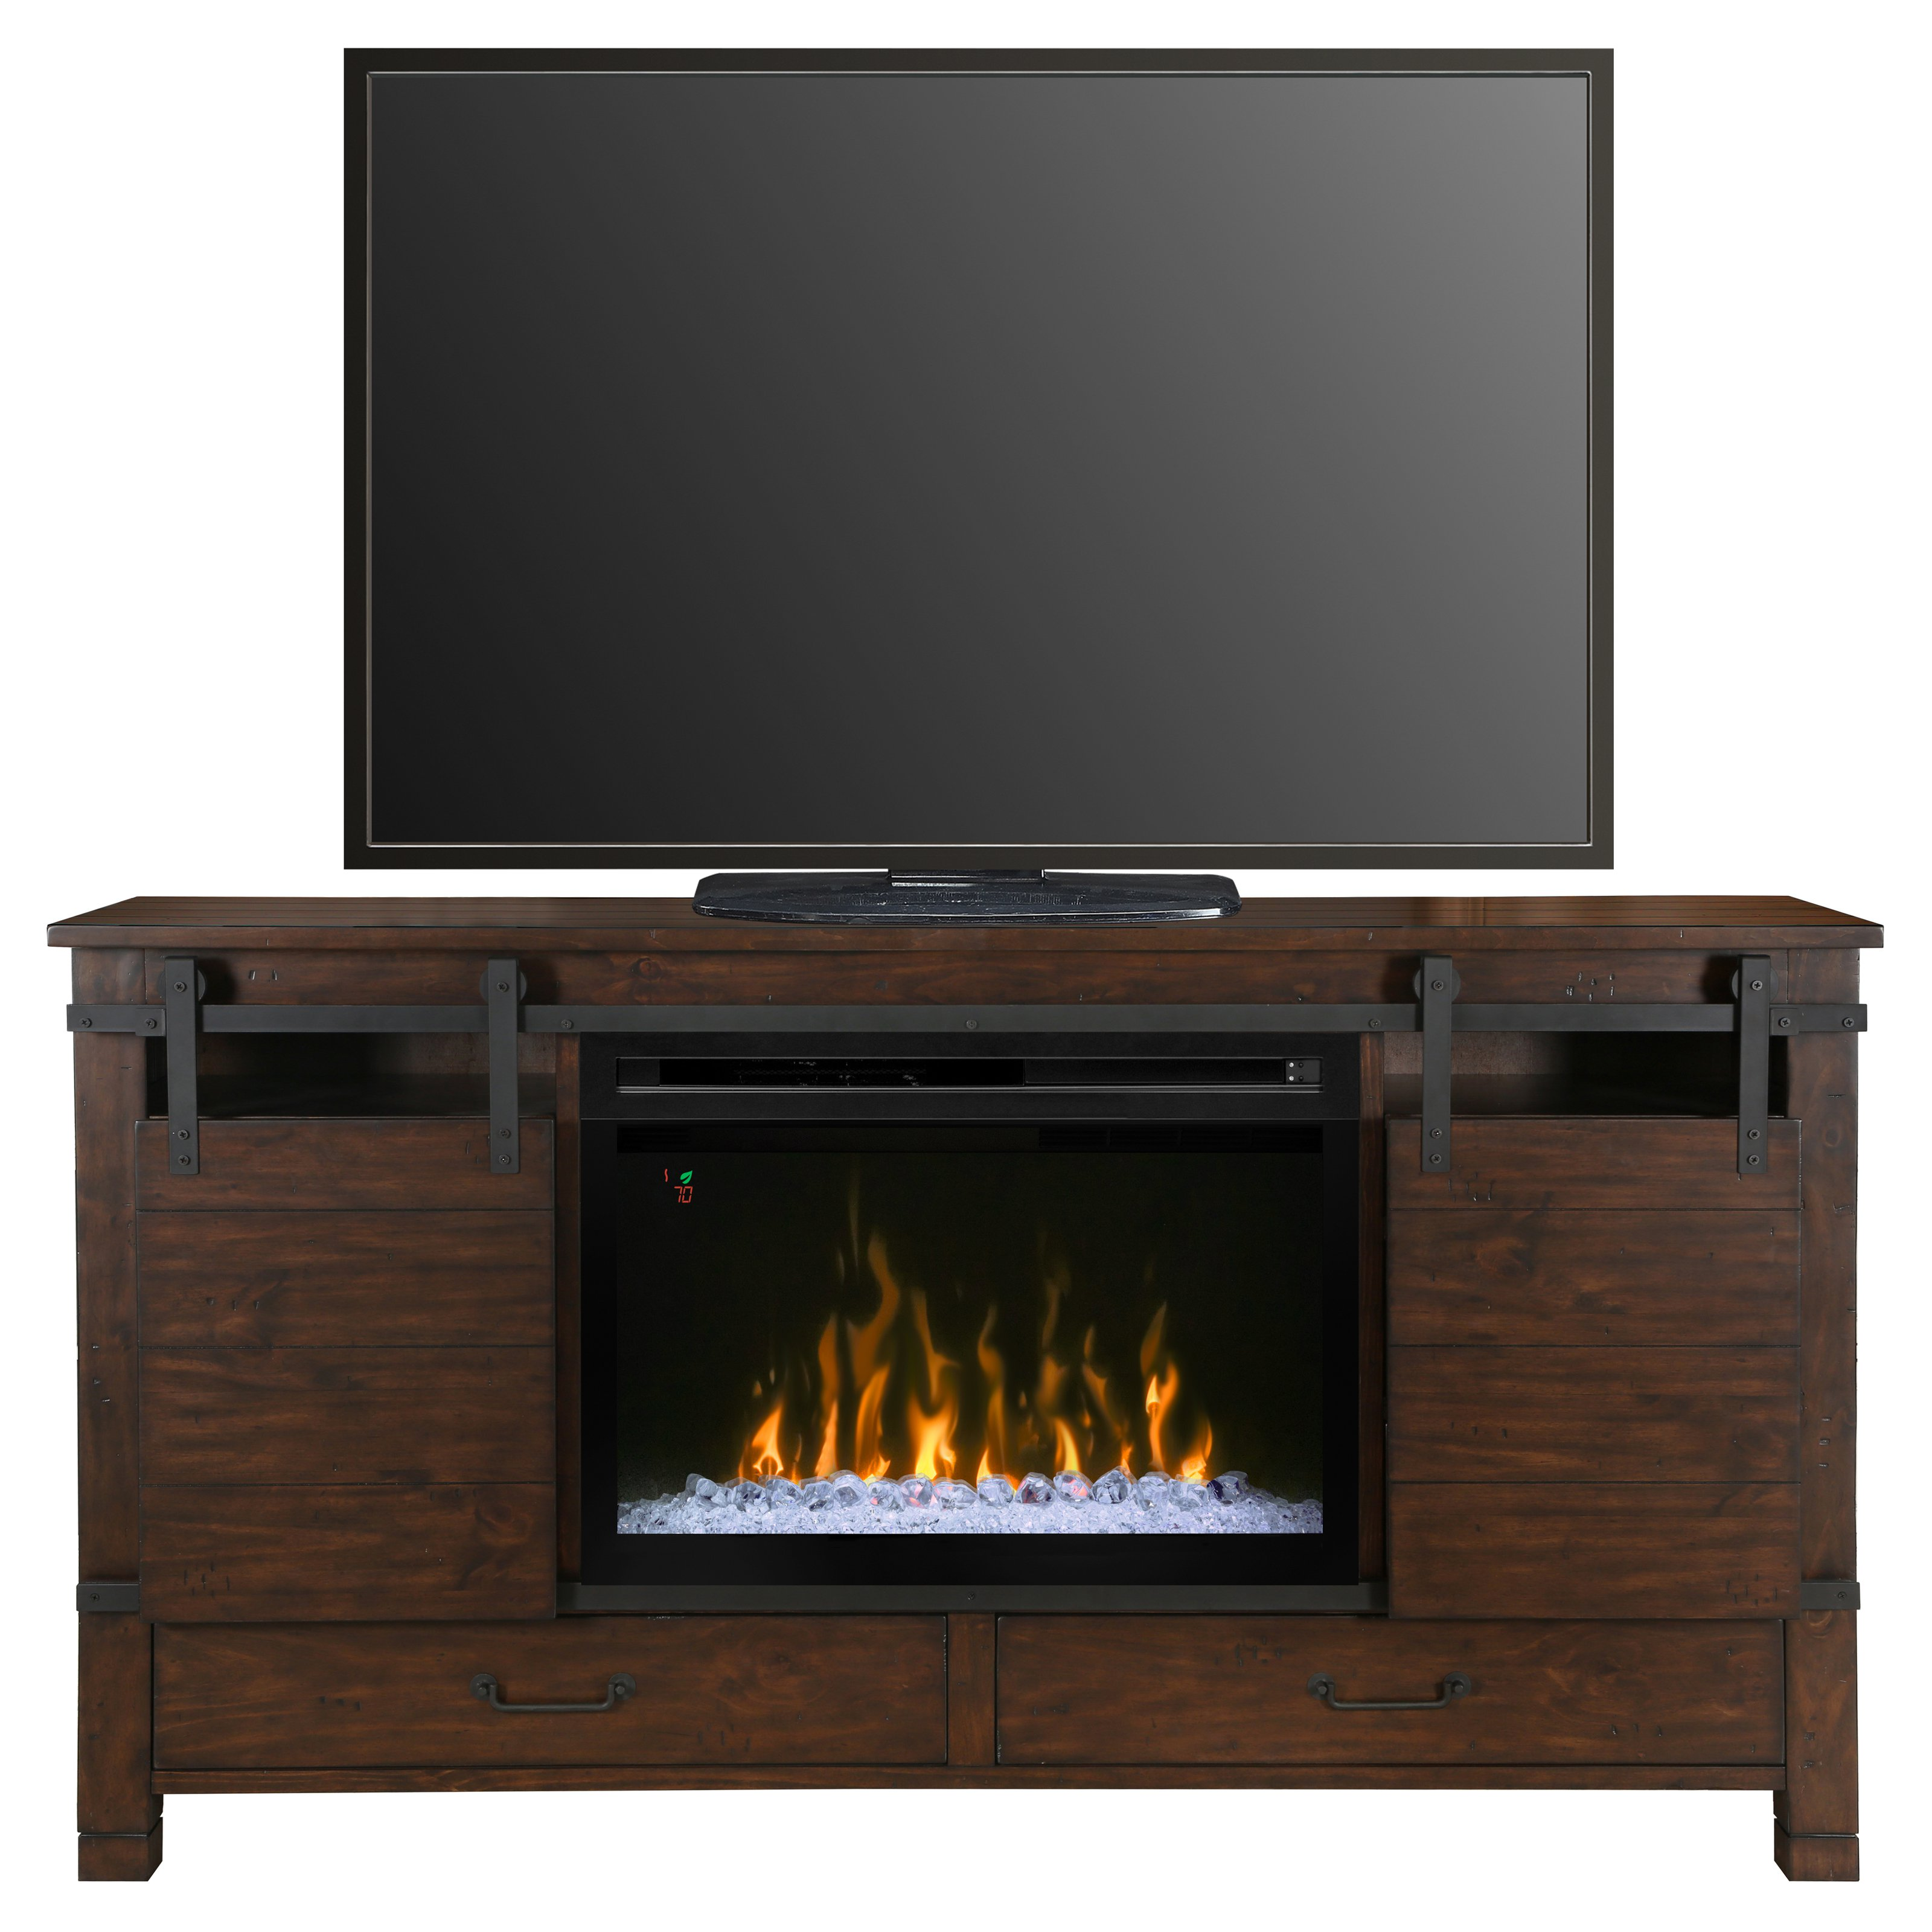 Electric Fireplaces For Sale Lowes Electric Wall Fireplace Electric Fireplace Heater Costco